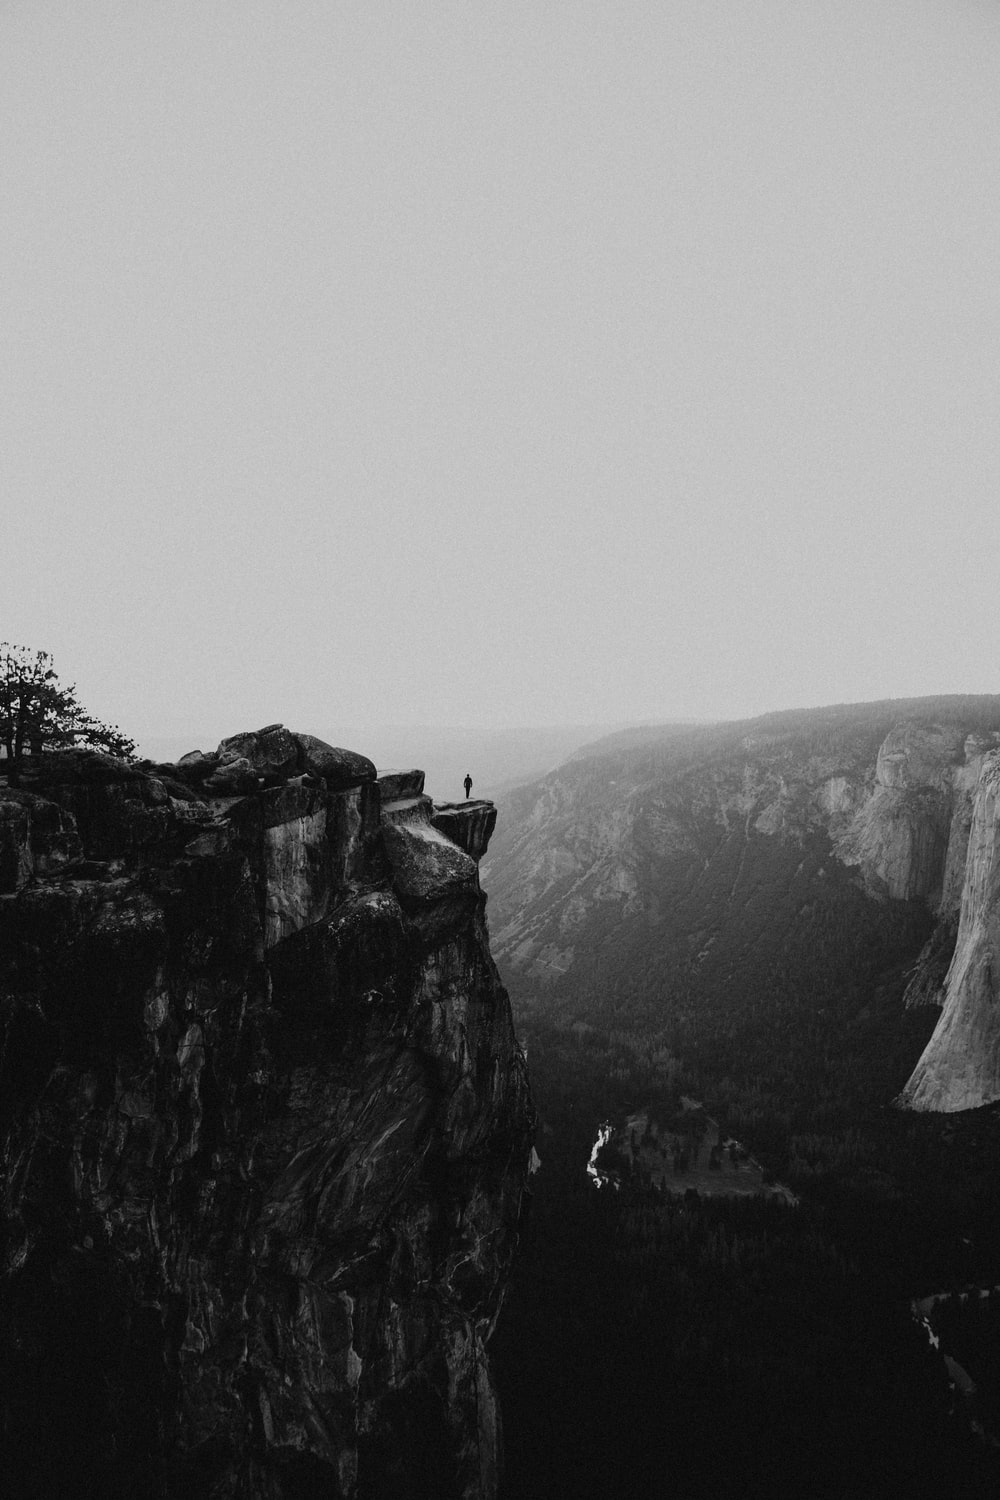 grayscale photo of person standing on mountain cliff